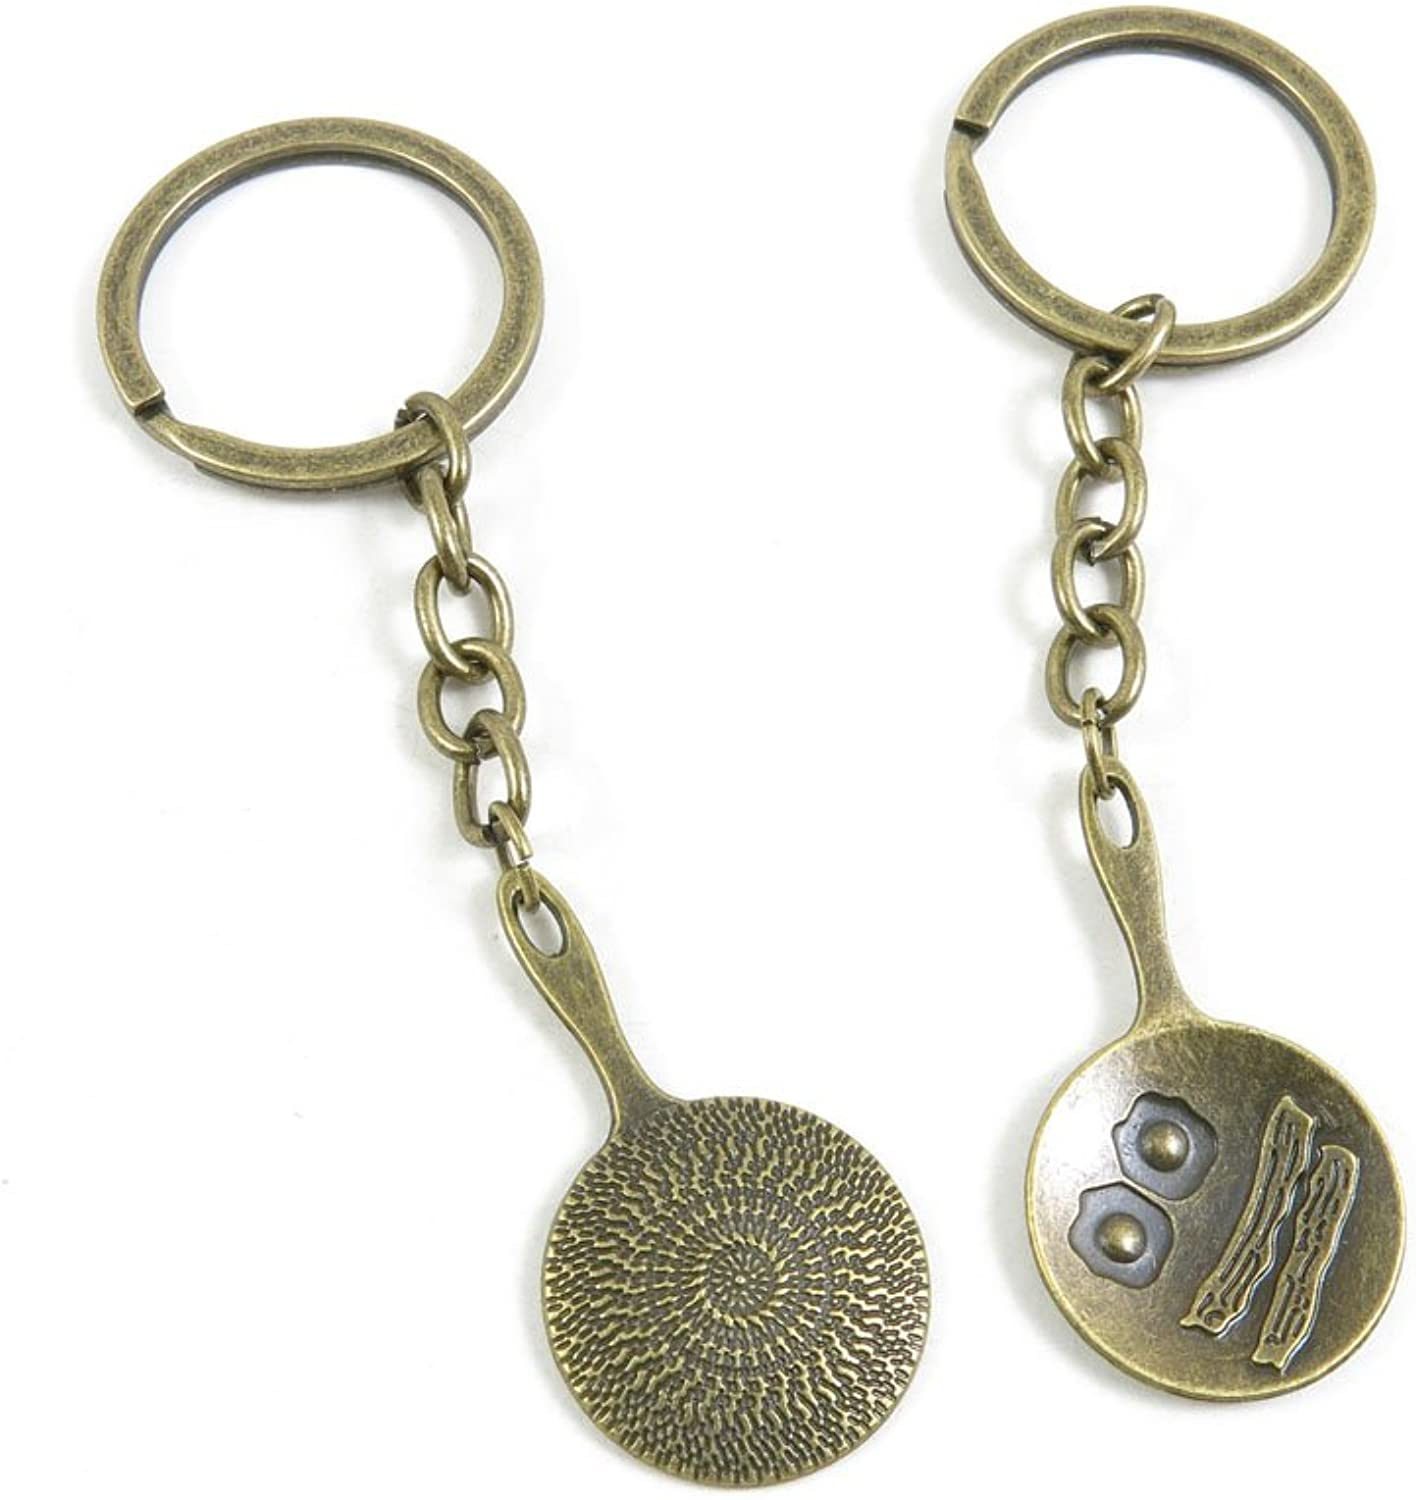 160 Pieces Fashion Jewelry Keyring Keychain Door Car Key Tag Ring Chain Supplier Supply Wholesale Bulk Lots C5RJ2 Omelette Pan Pot